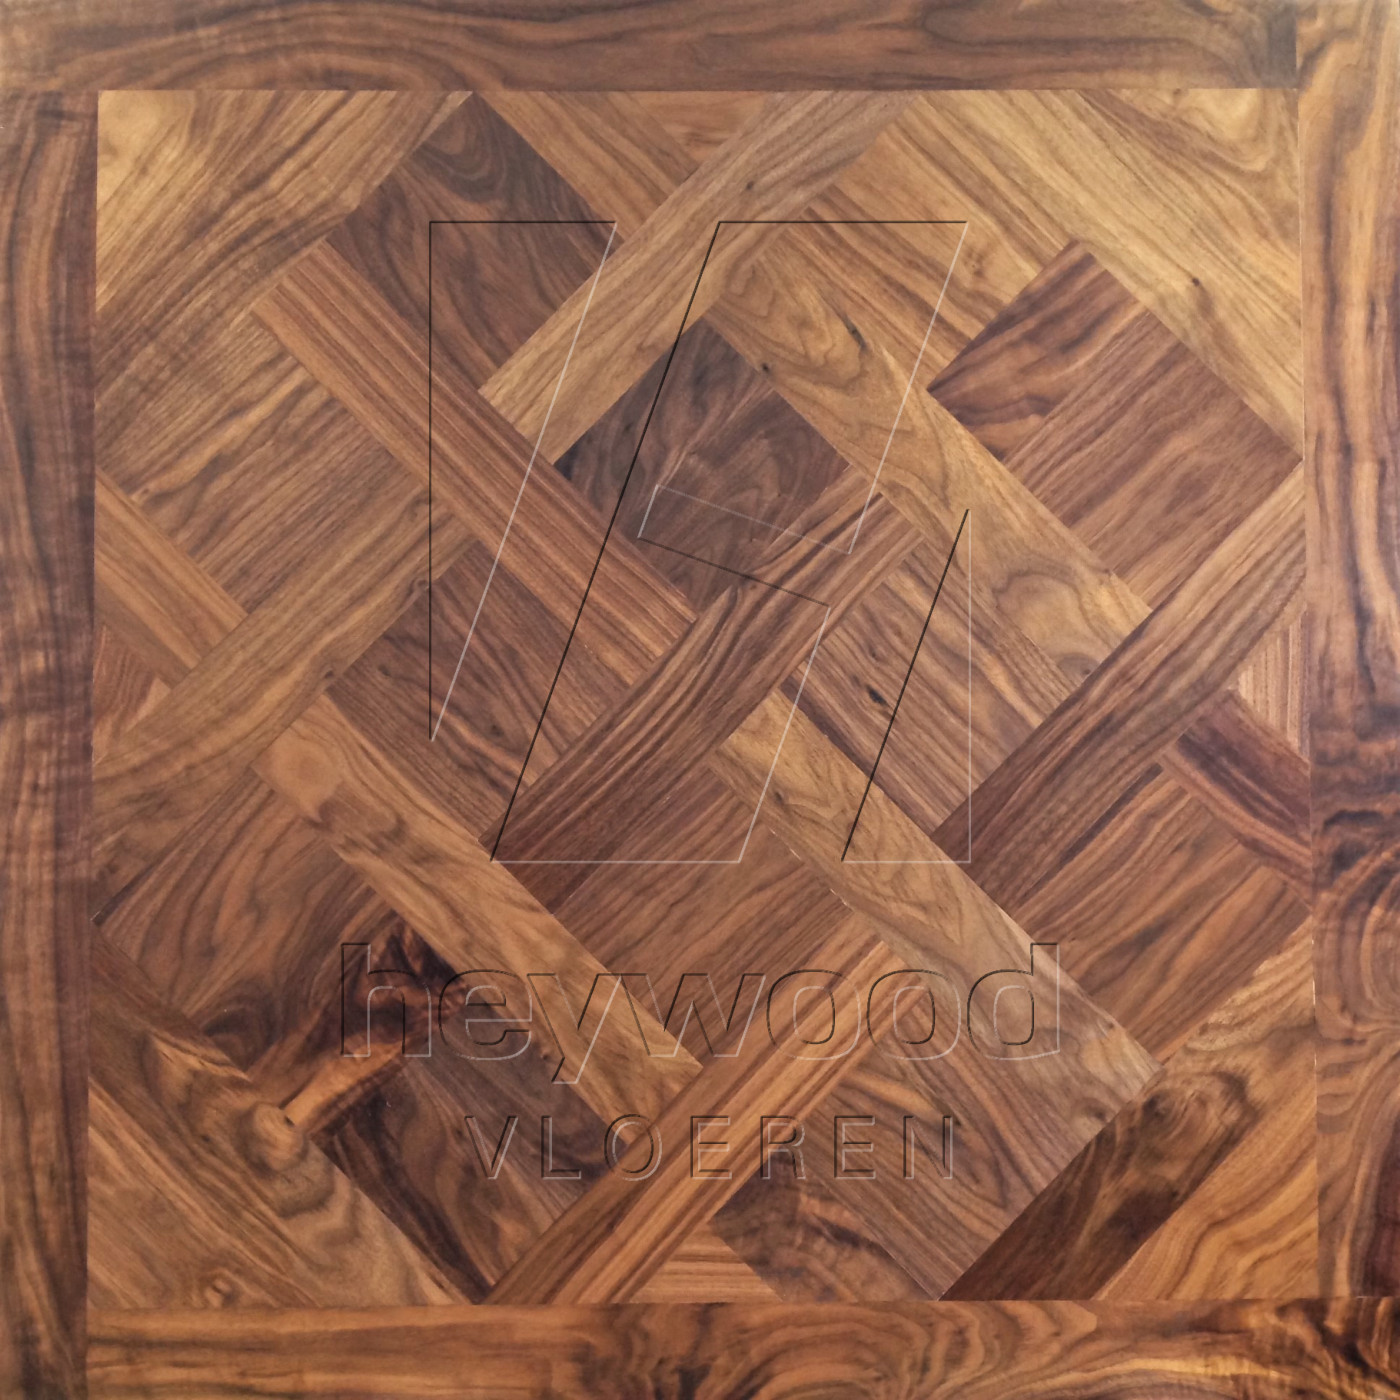 Walnut Versailles, Fas grade, Osmo 3032 oiled in Panels of Pattern & Panel Floors